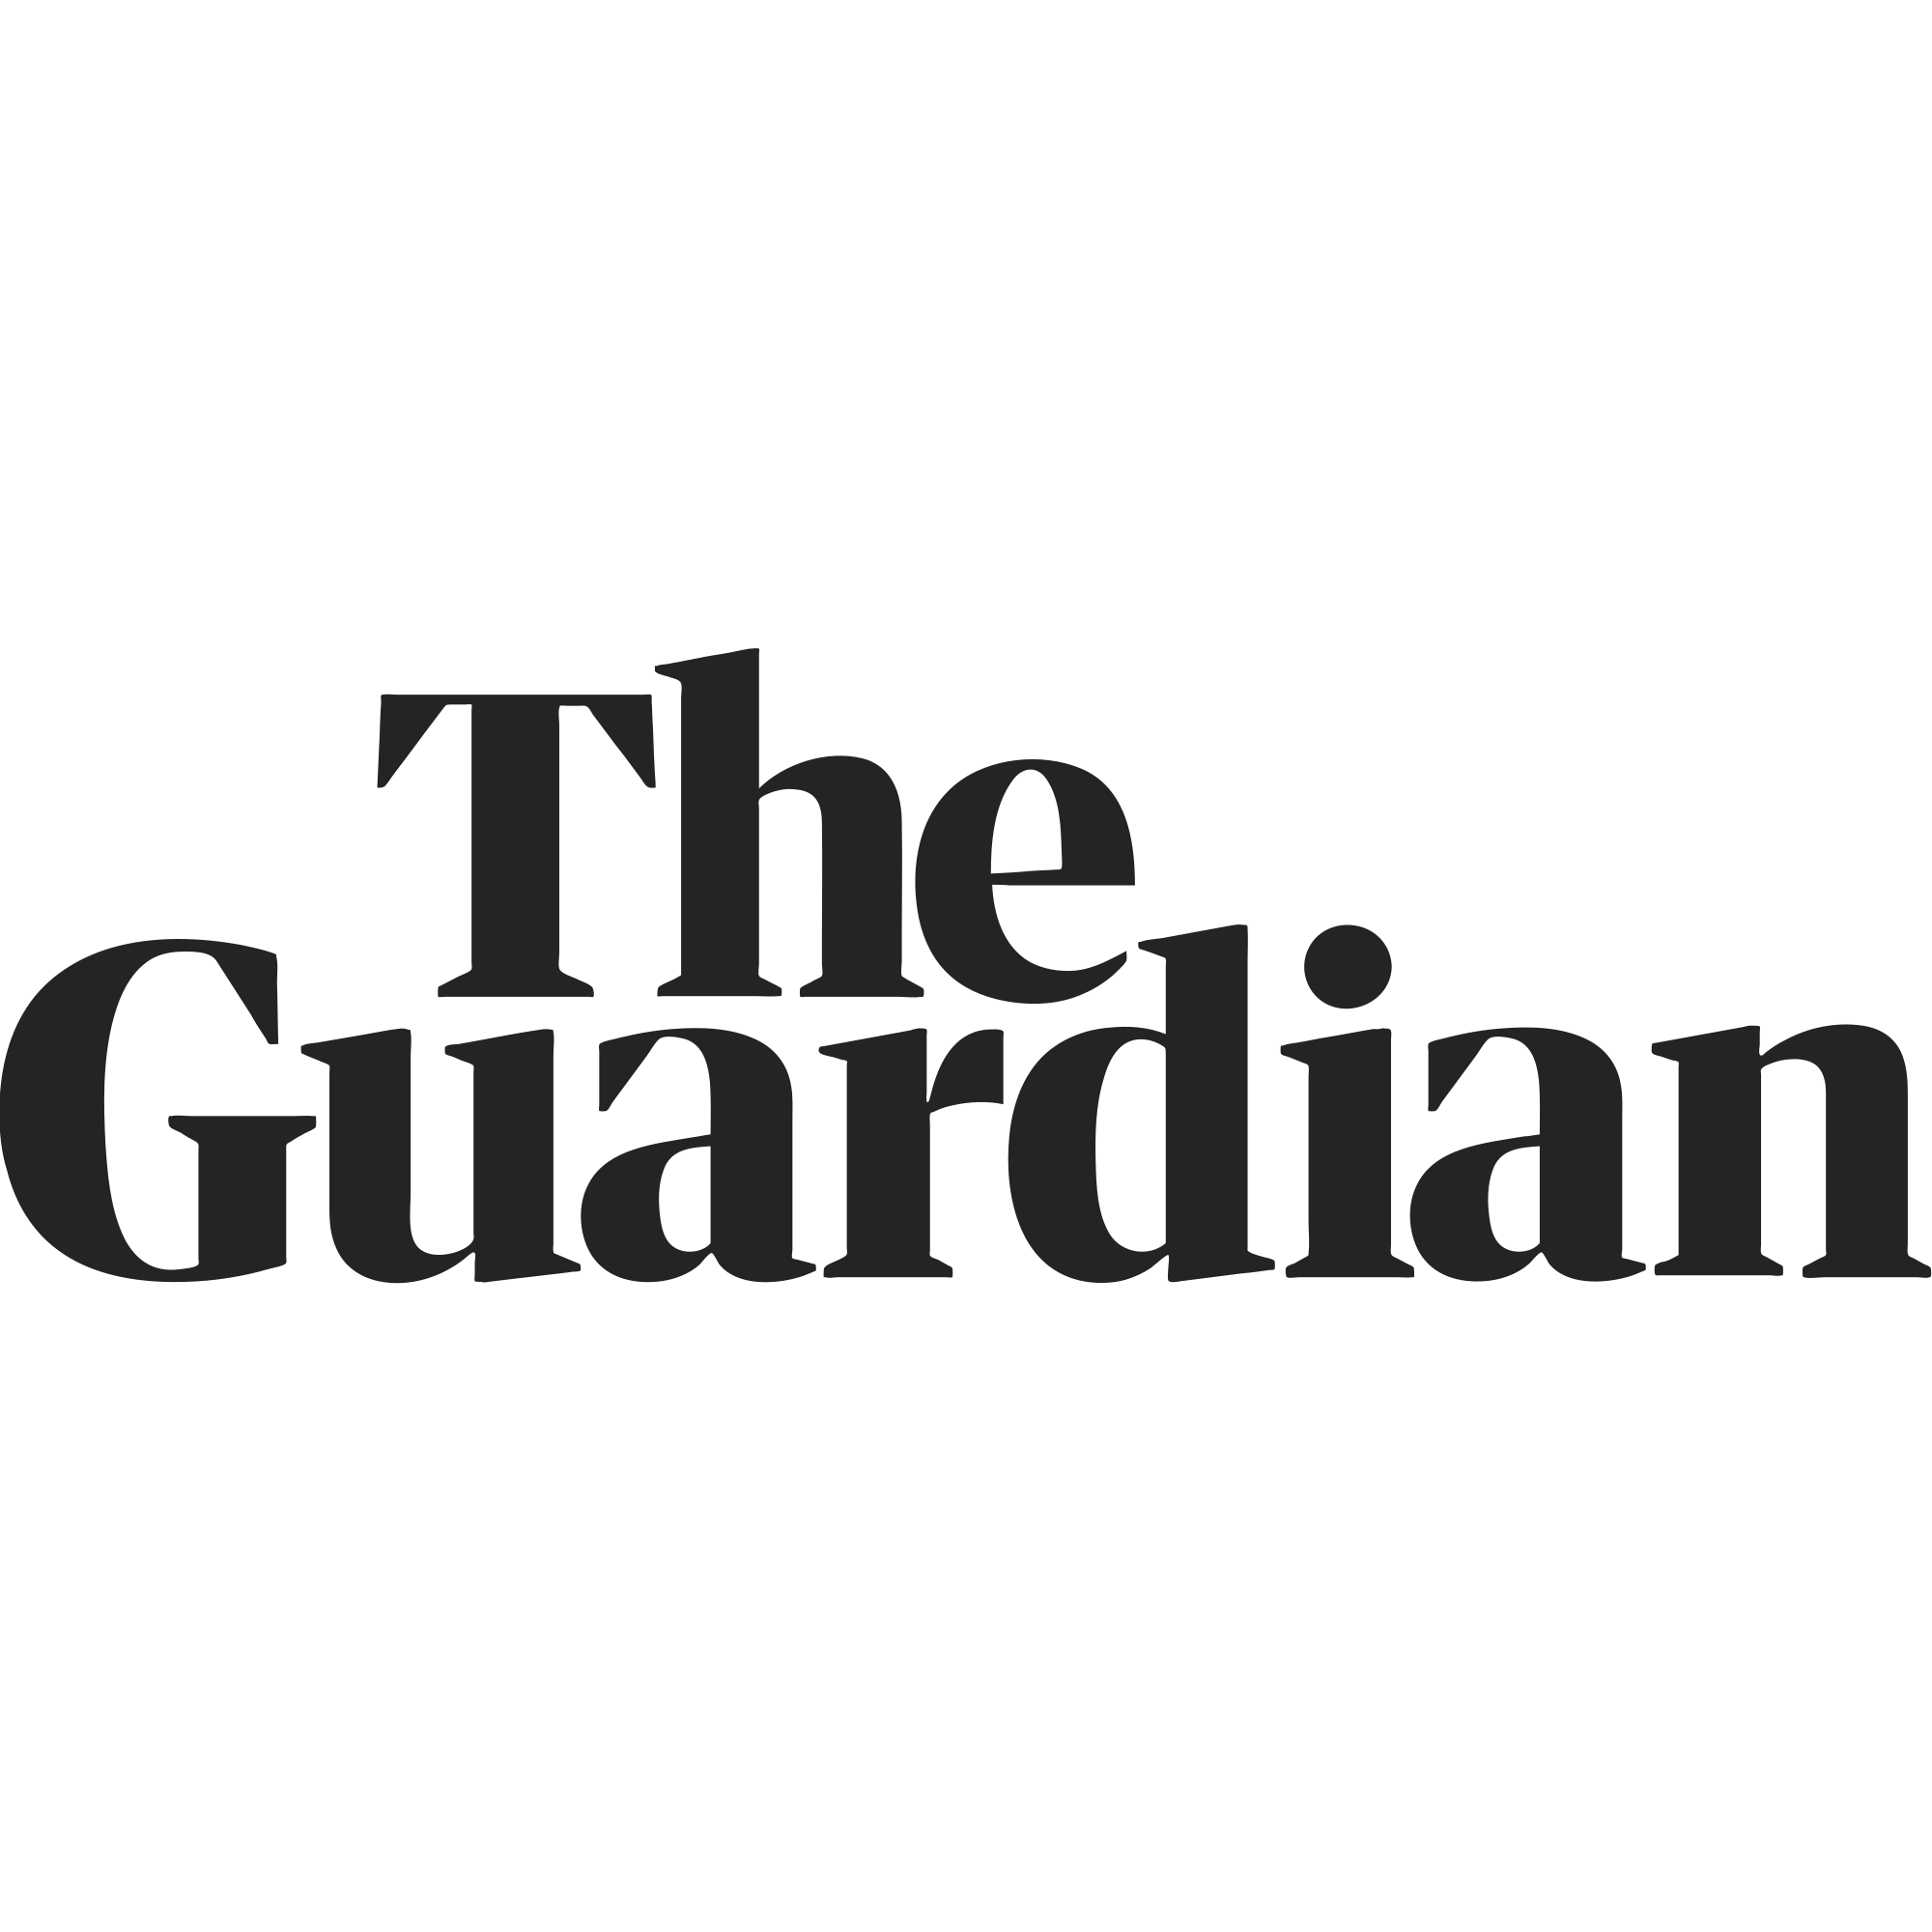 guardian logo square